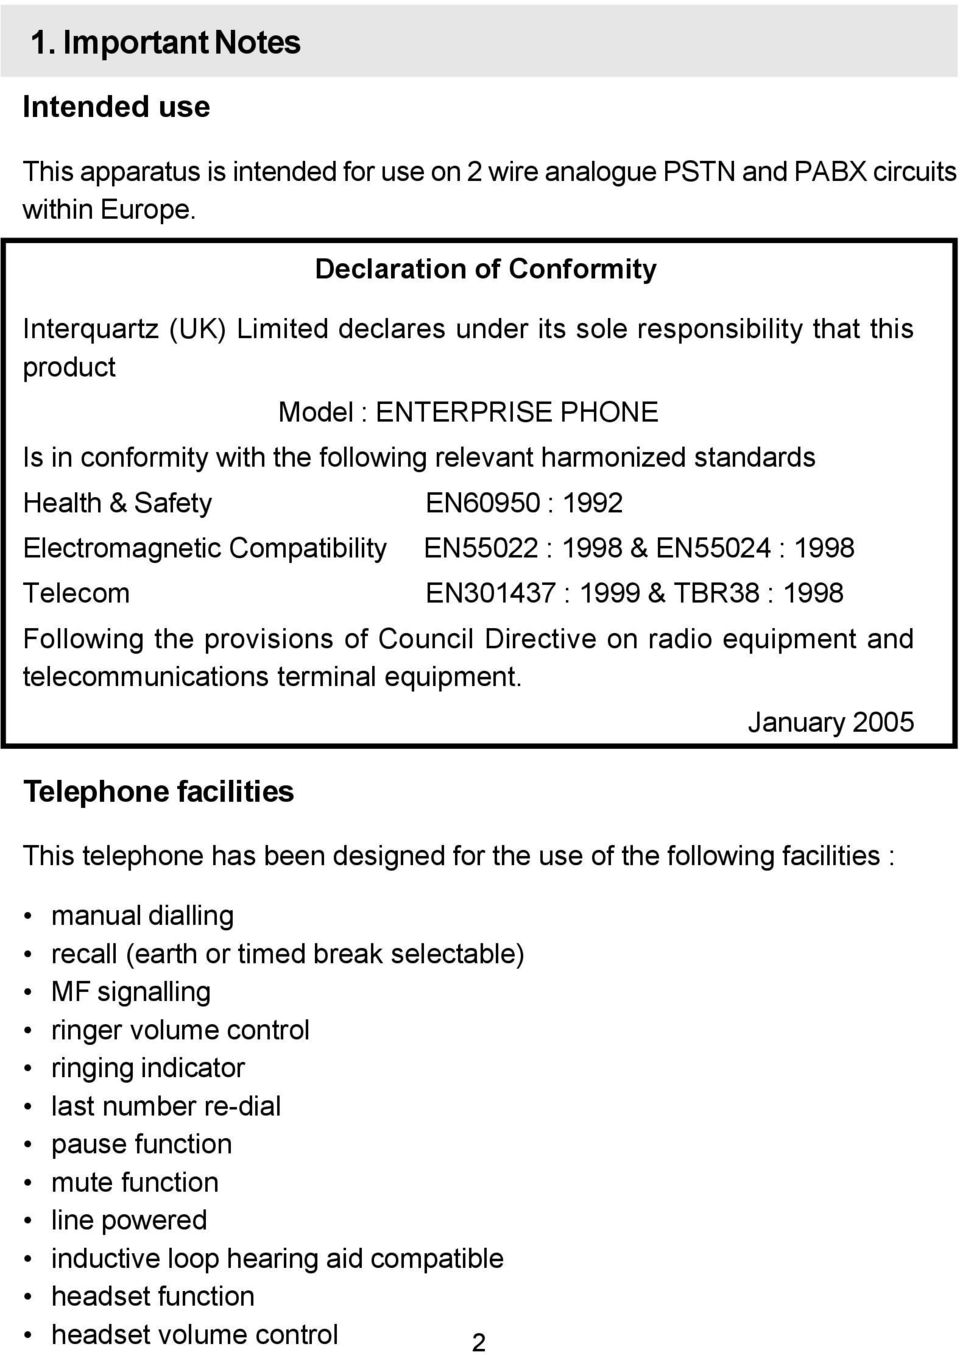 Health & Safety EN60950 : 1992 Electromagnetic Compatibility EN55022 : 1998 & EN55024 : 1998 Telecom EN301437 : 1999 & TBR38 : 1998 Following the provisions of Council Directive on radio equipment